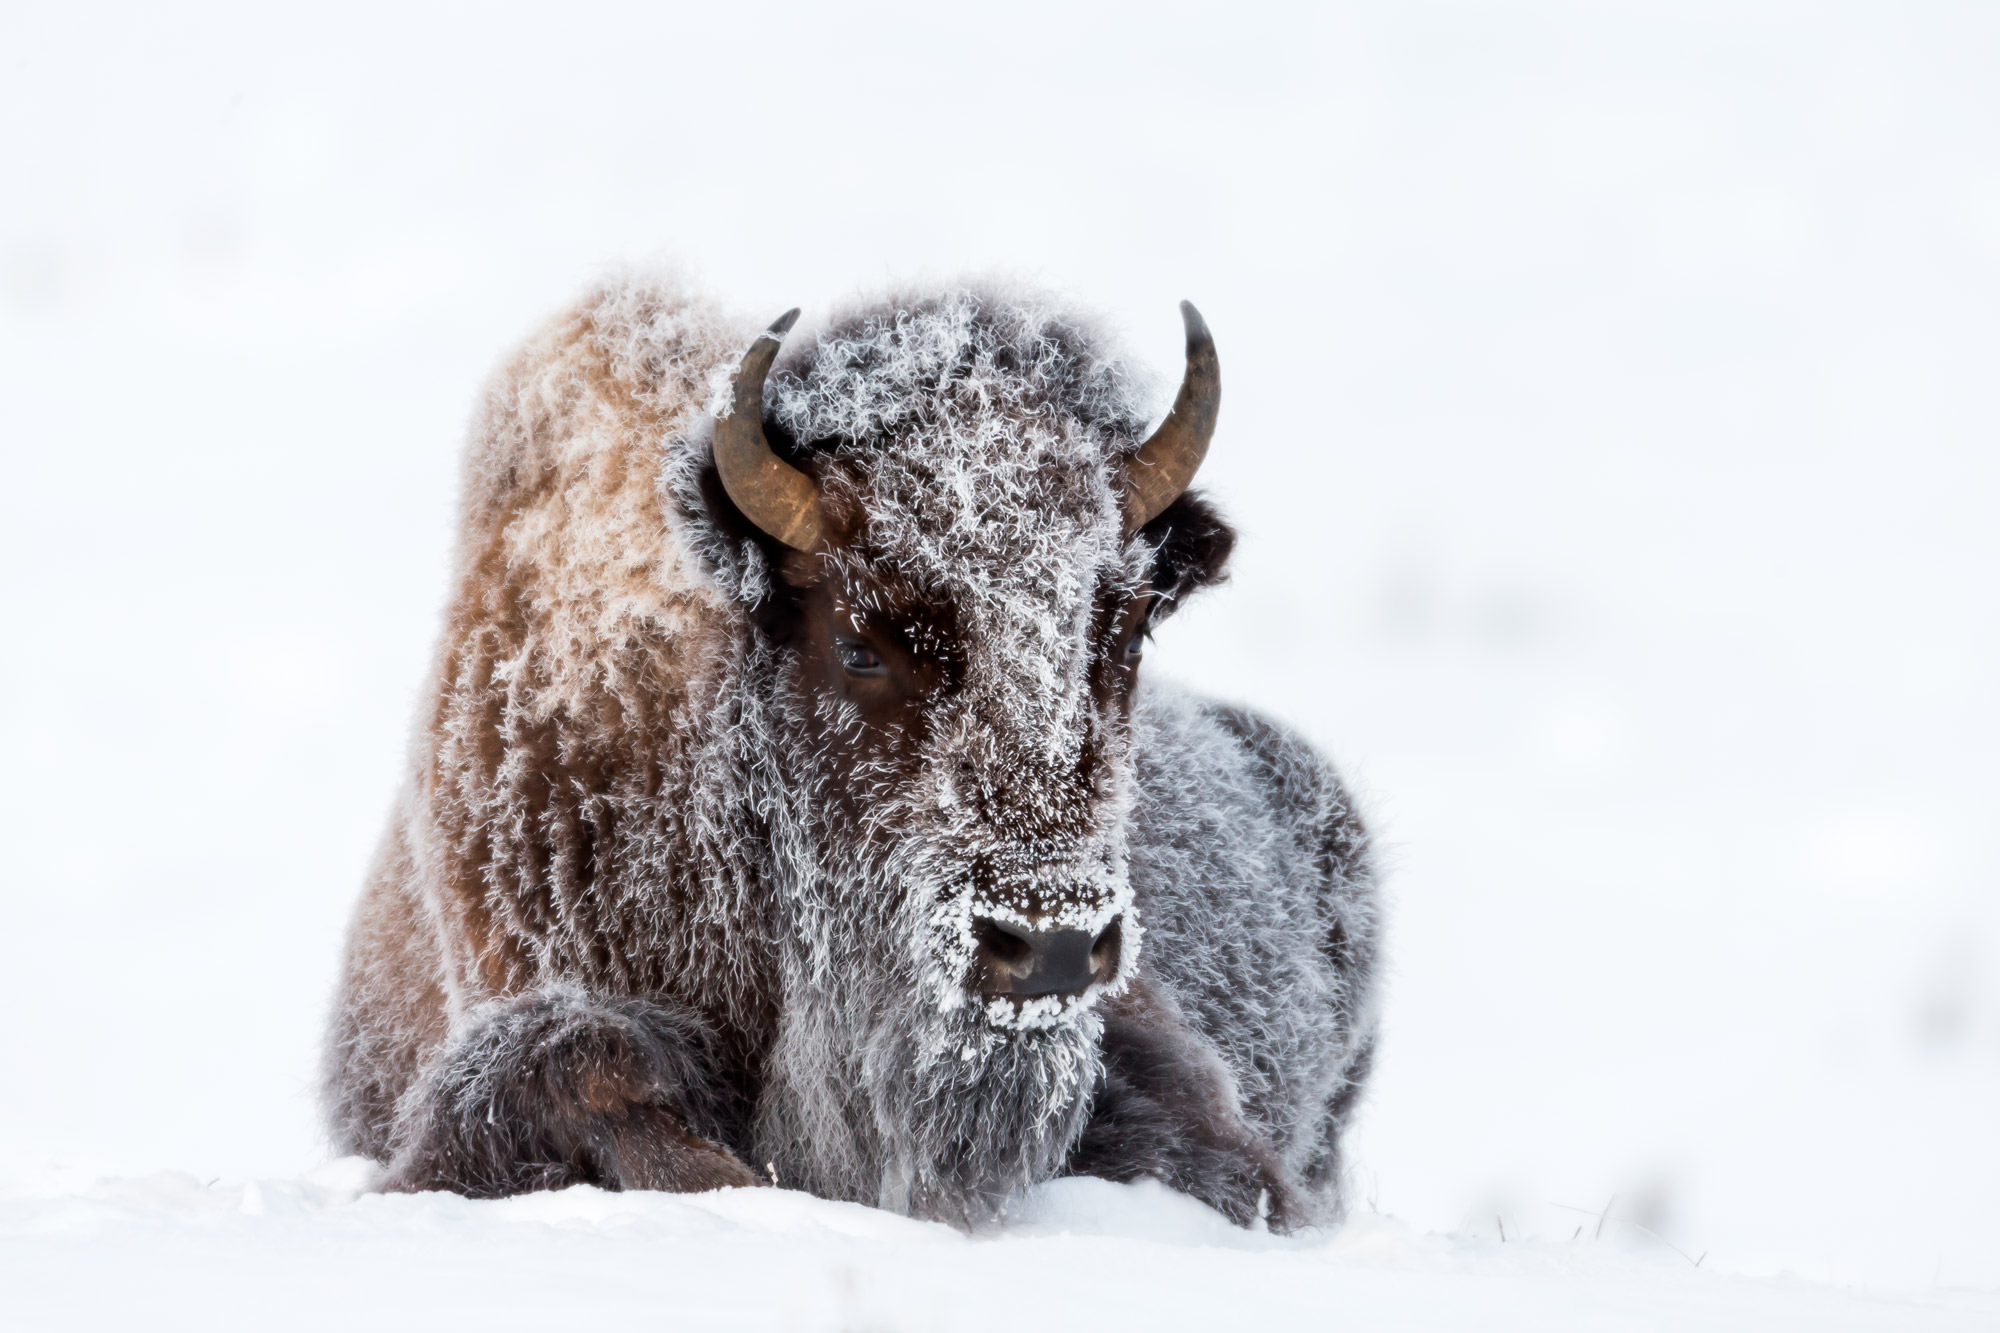 Wyoming, Bison, Winter, Yellowstone, Frosty, fine art, wildlife, limited edition, photo